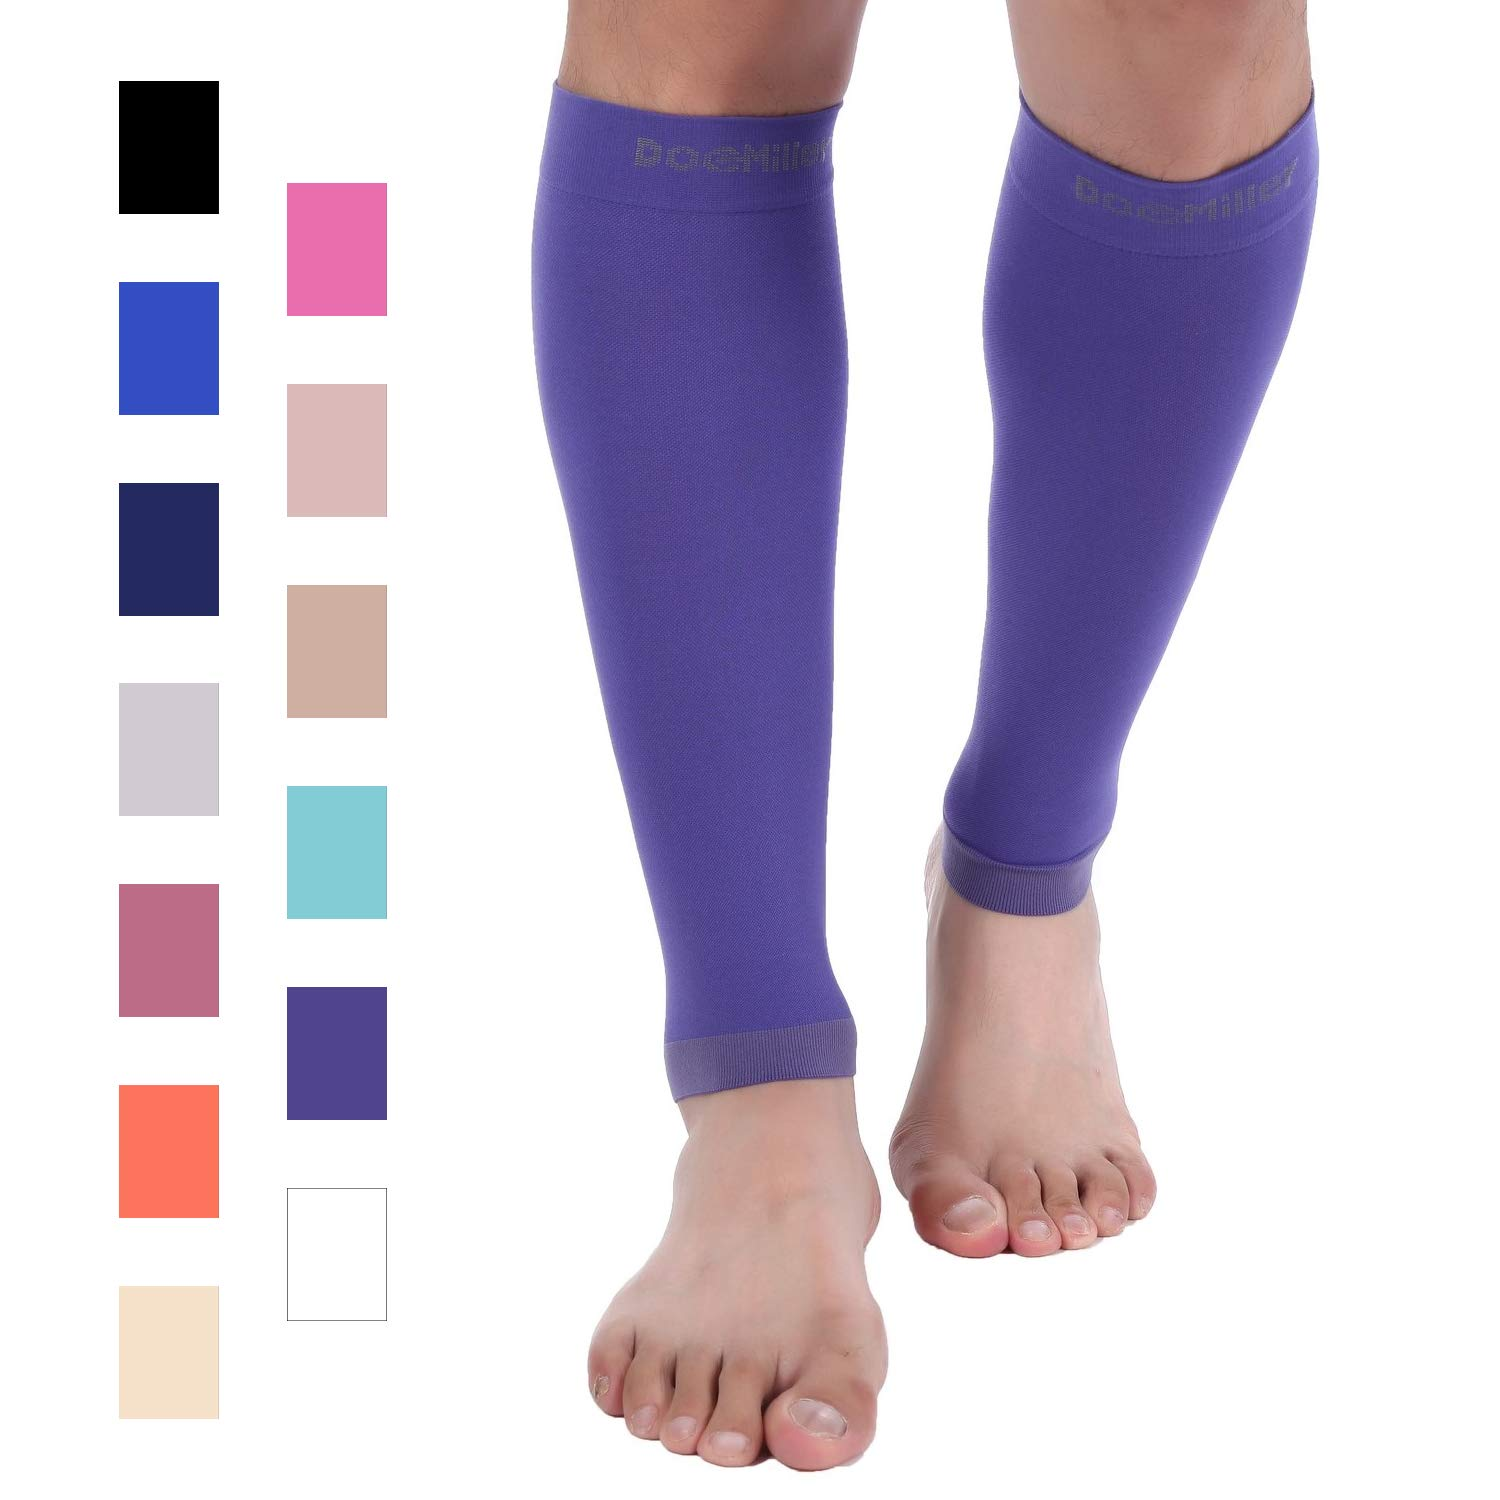 Doc Miller Premium Calf Compression Sleeve 1 Pair 20-30mmHg Strong Calf Support Fashionable Colors Graduated Pressure for Sports Running Muscle Recovery Shin Splints Varicose Veins (Violet, Large) by Doc Miller